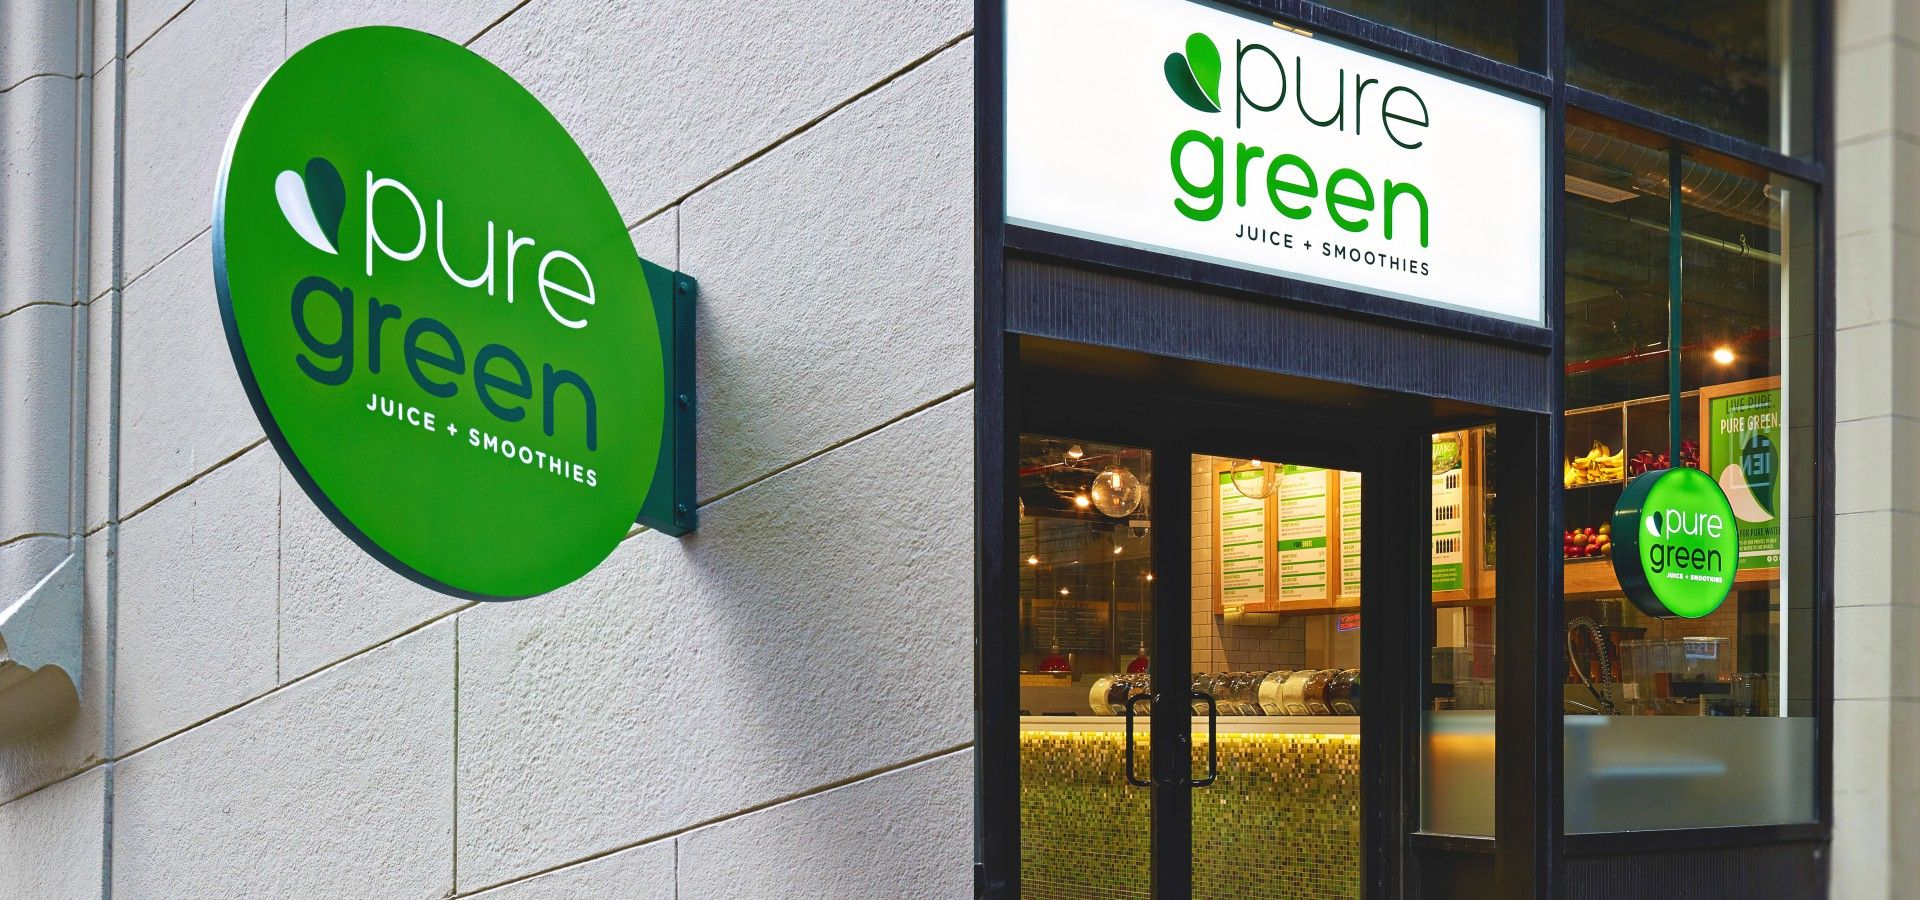 Exterior Signage For Pure Green Juice Smoothies New